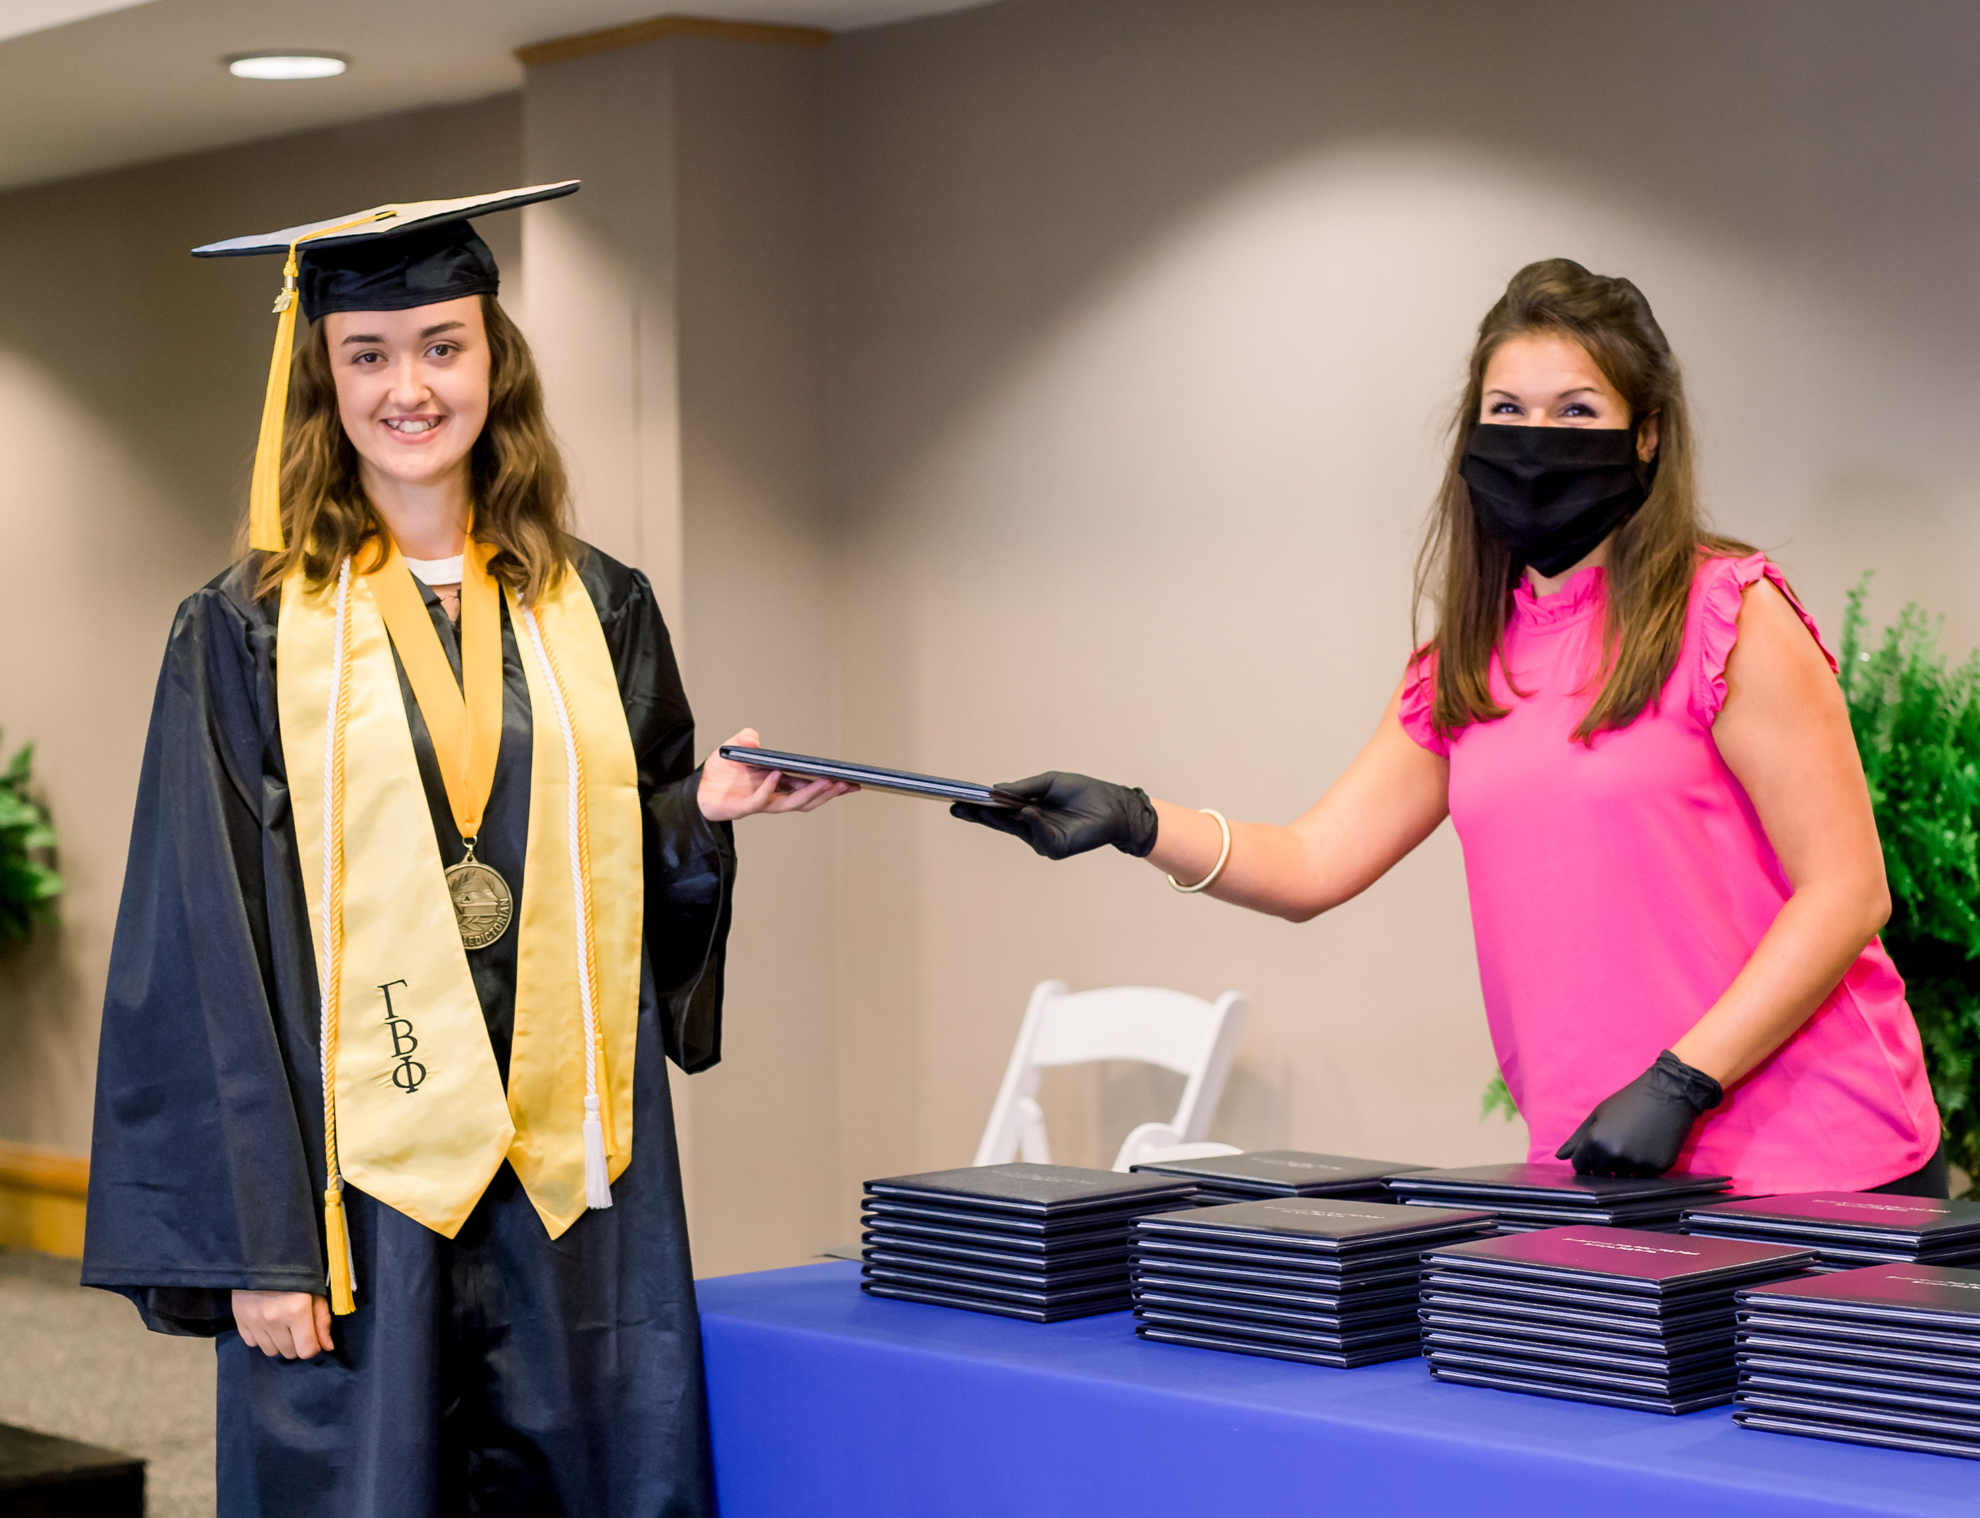 A person in graduation gear accepts a diploma